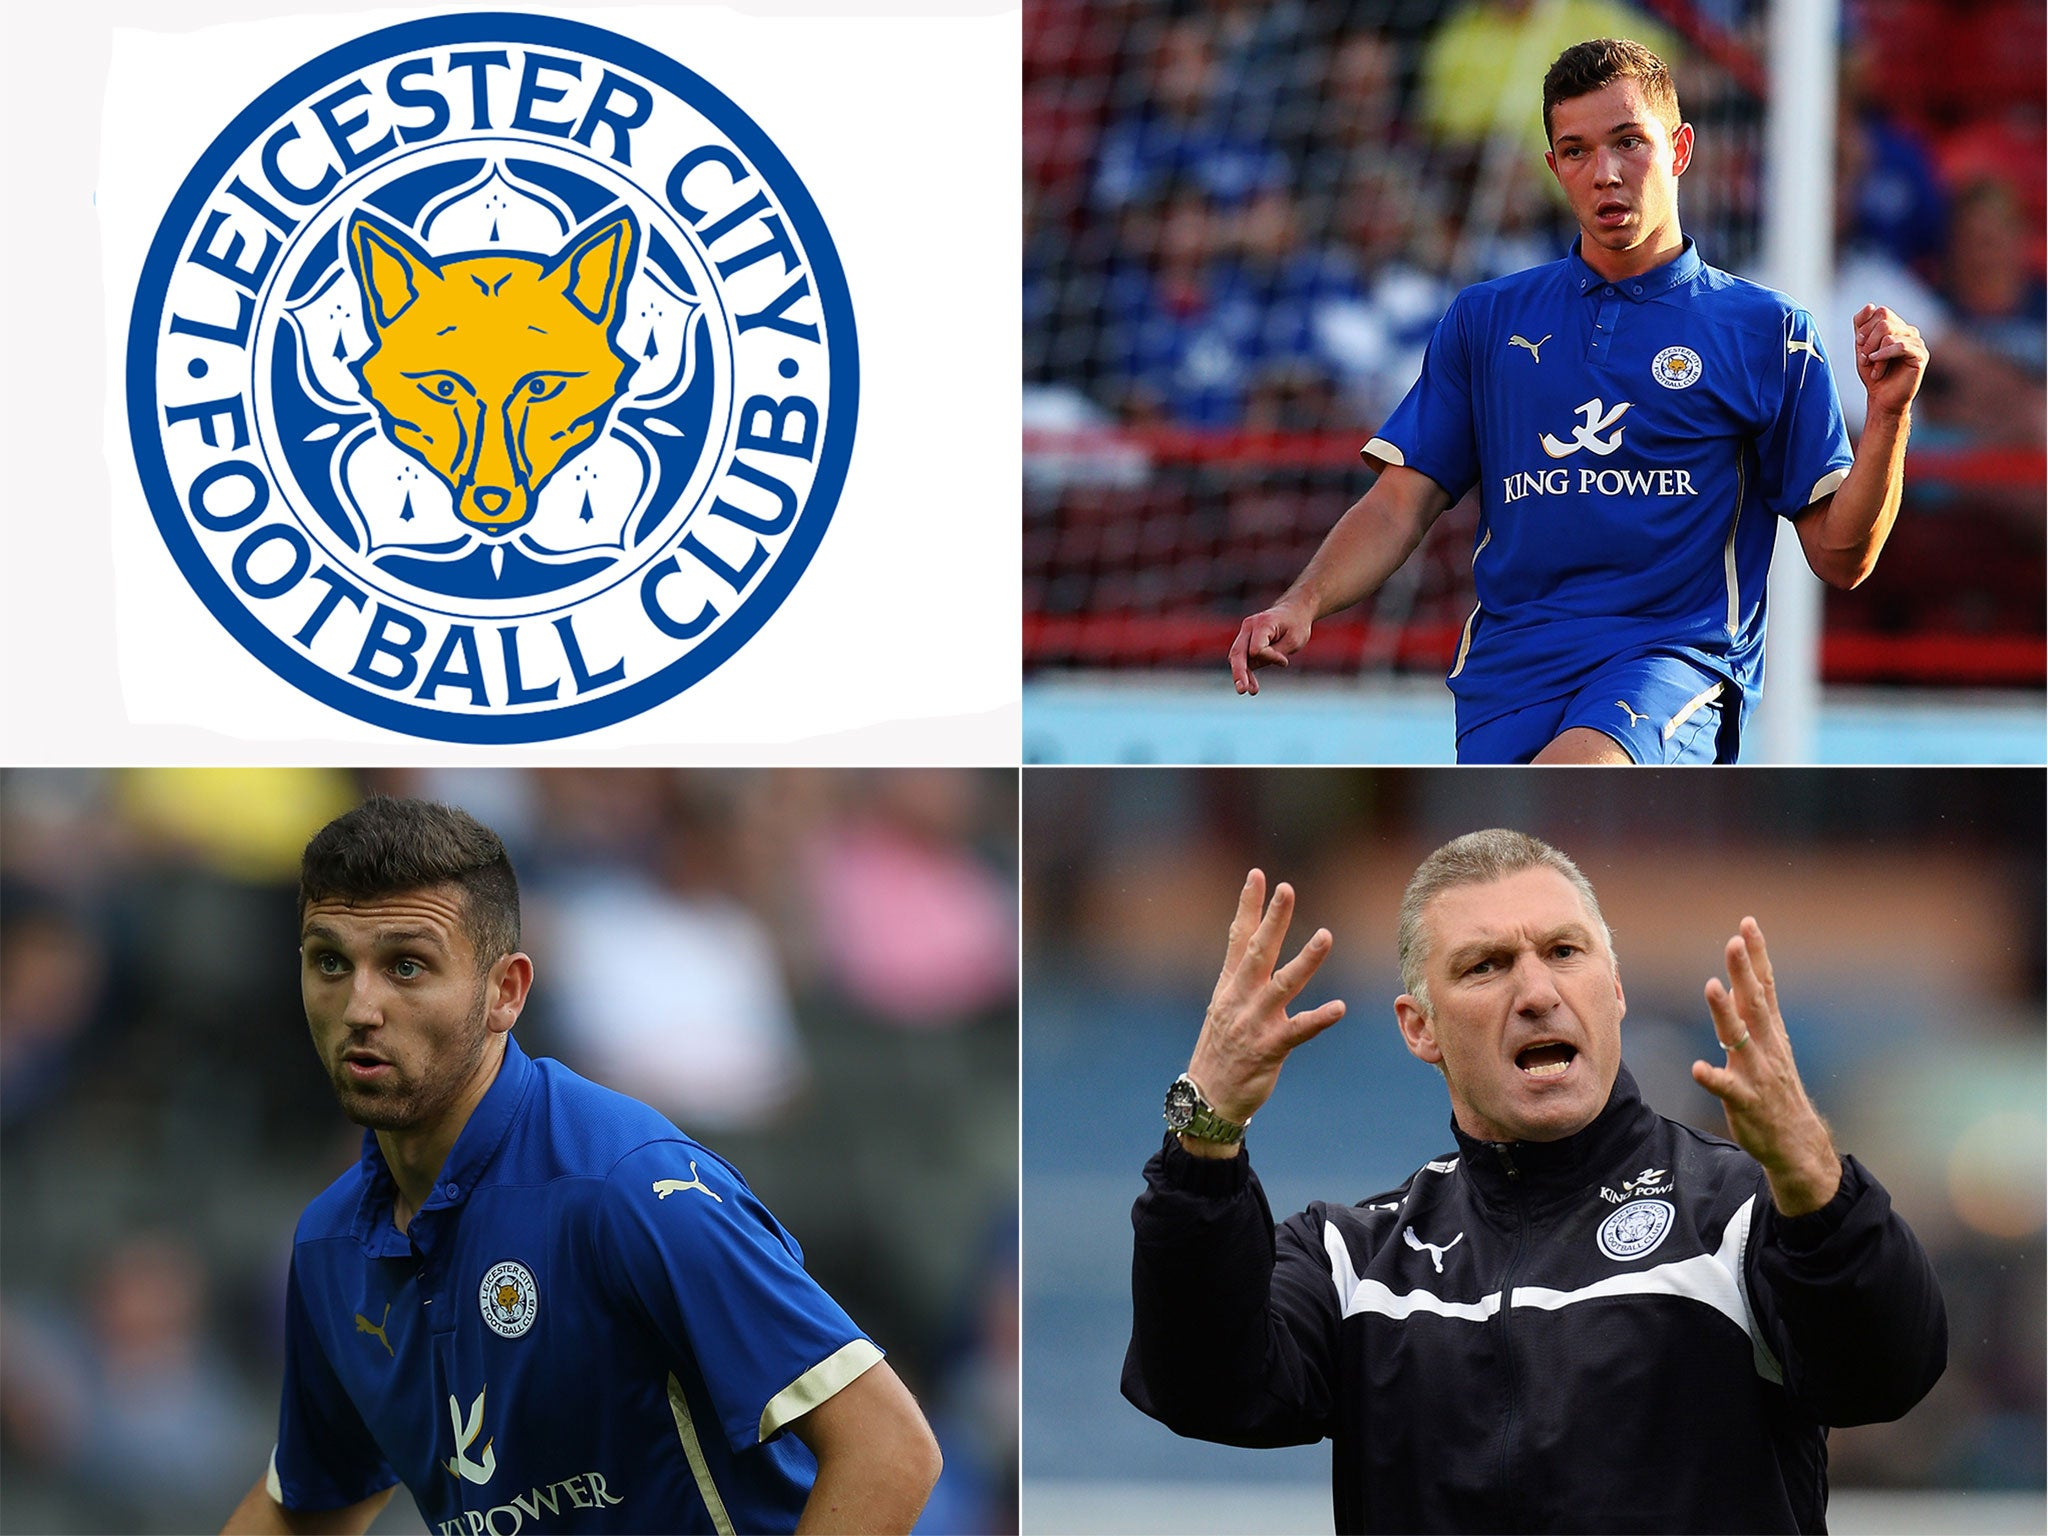 Sex video with leicester city players hd